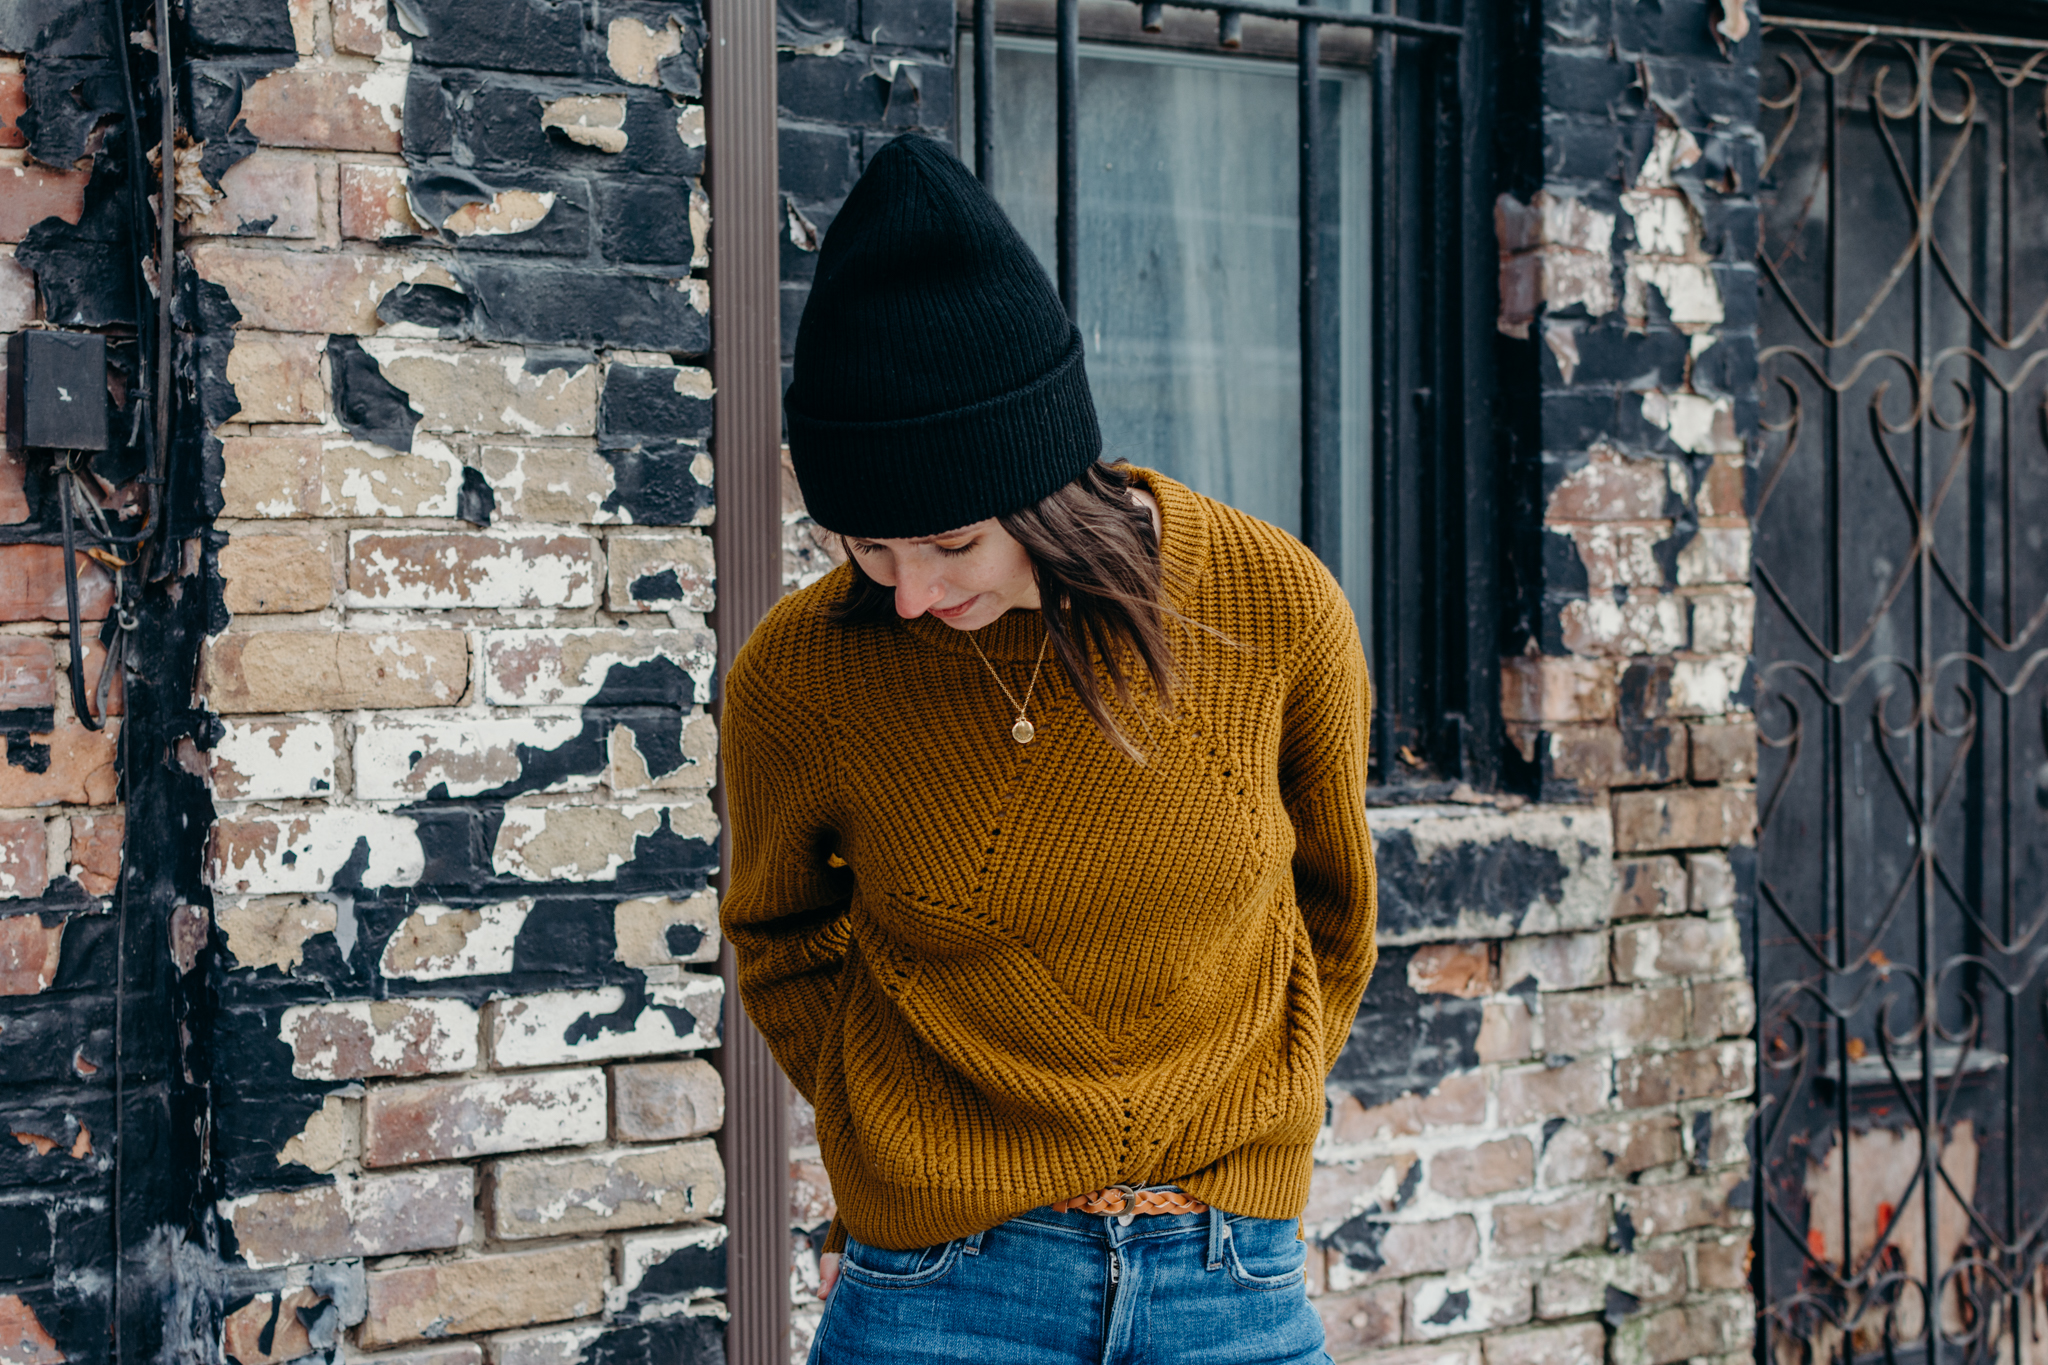 wilfred artizia serment sweater citizens of humanity rocket skinny jeans blundstone style outfit women - style apotheca